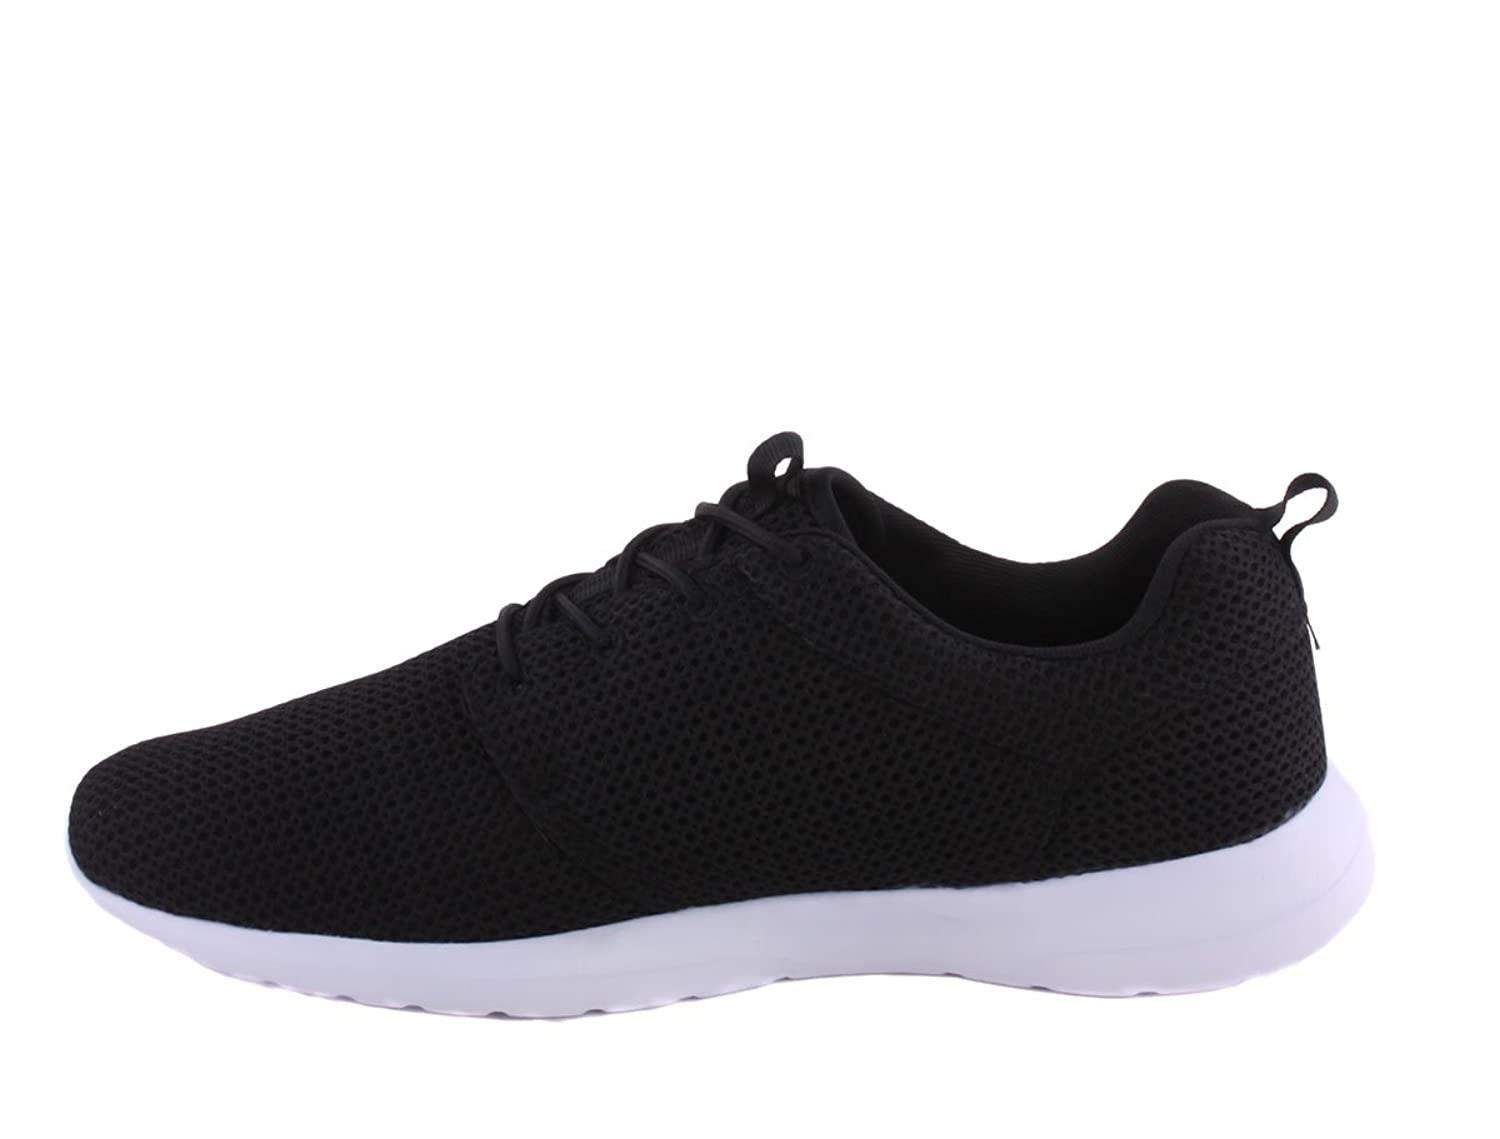 inarj Mens Running Trainers Casual Lace Up Shoes Roshe Lightweight Gym